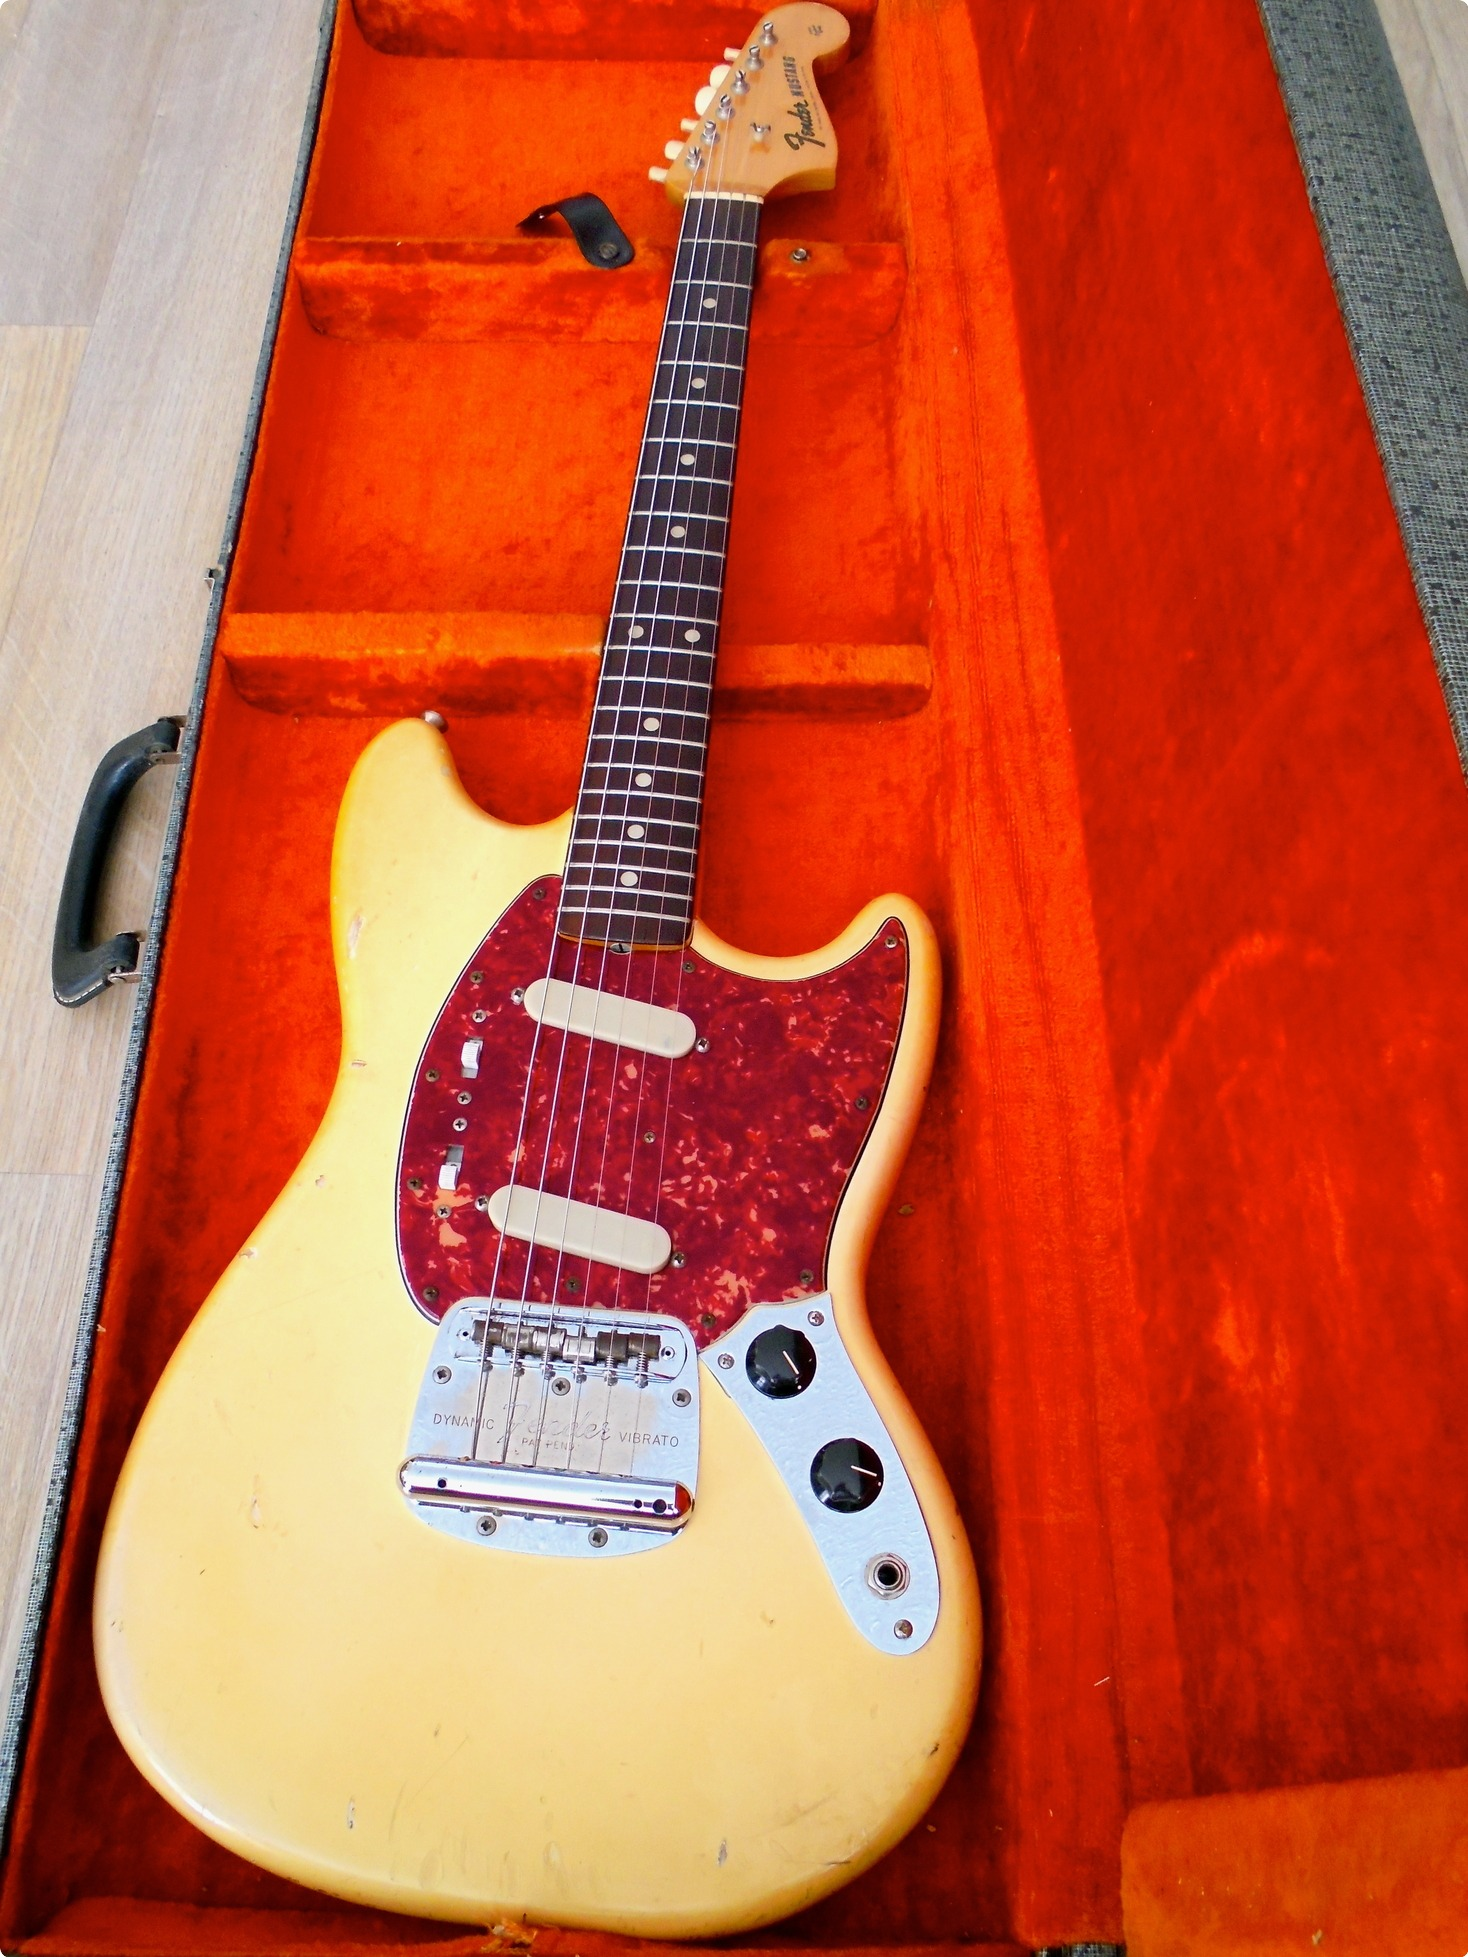 fender mustang 1965 olympic white guitar for sale pascal waisapy guitars. Black Bedroom Furniture Sets. Home Design Ideas